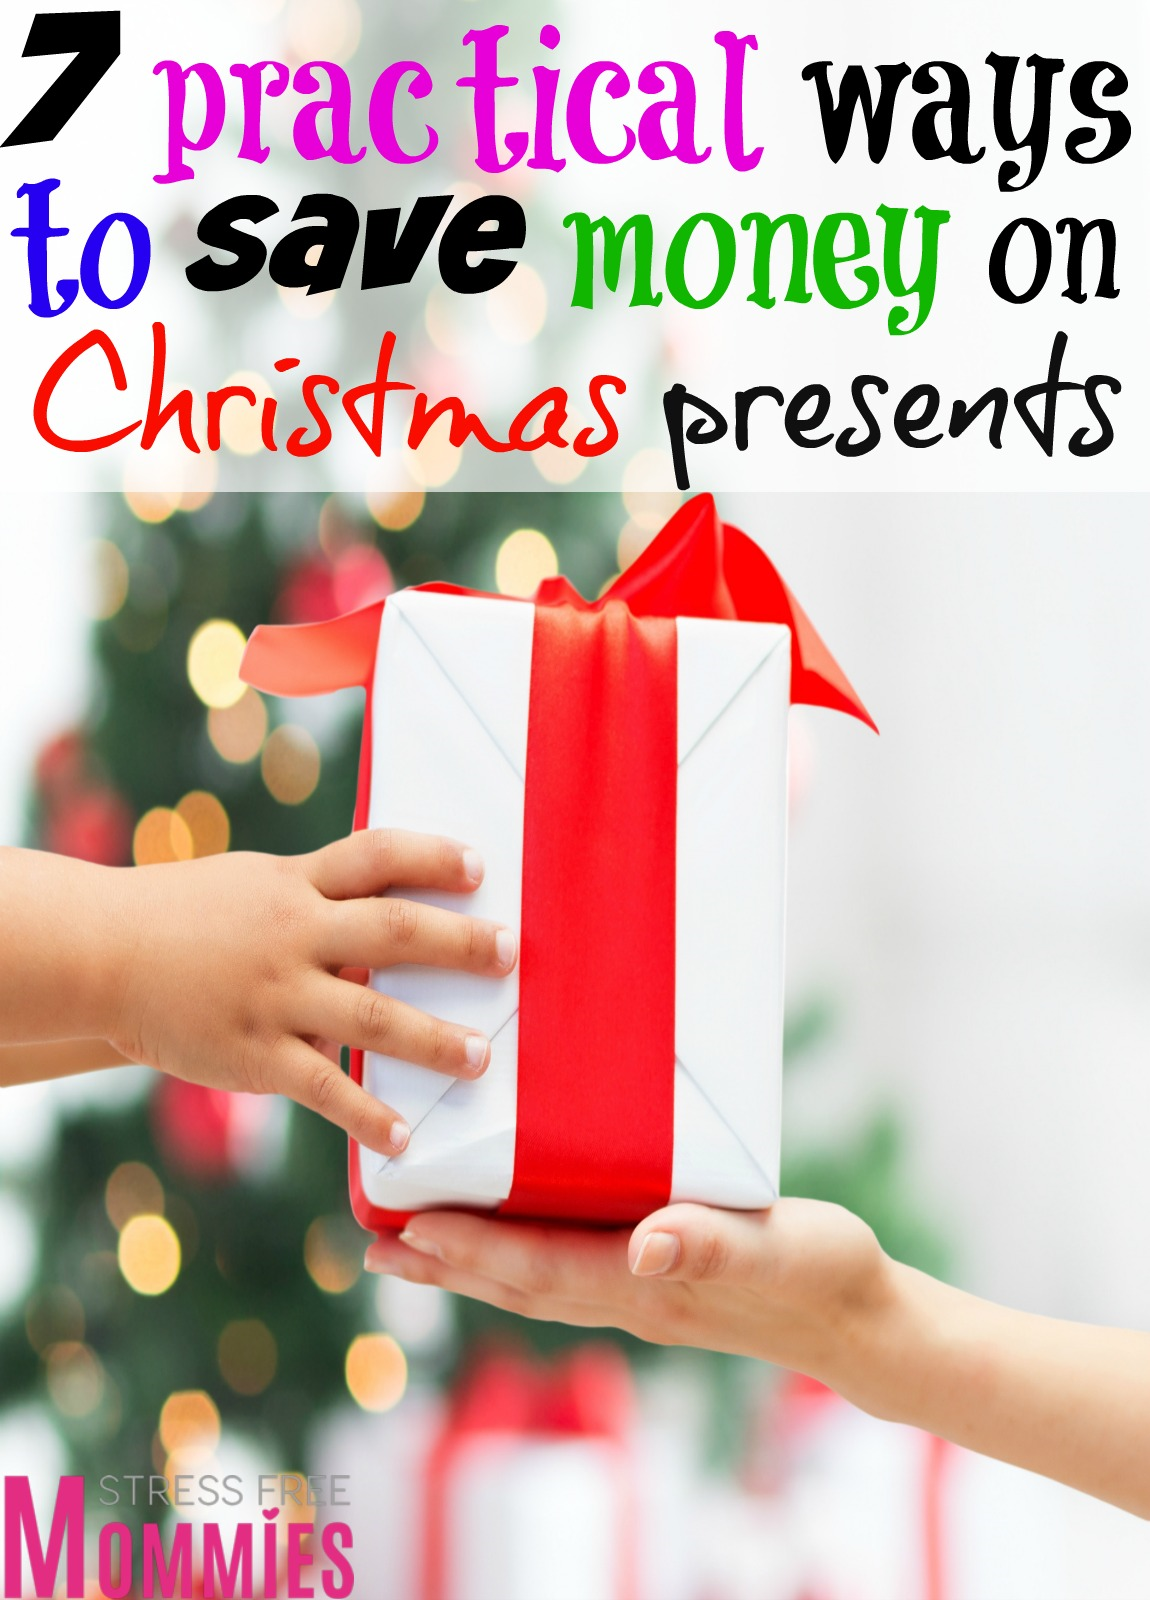 This is how to save money on Christmas presents! Simple but effective tips that's going to help you save money on those expensive Christmas presents!